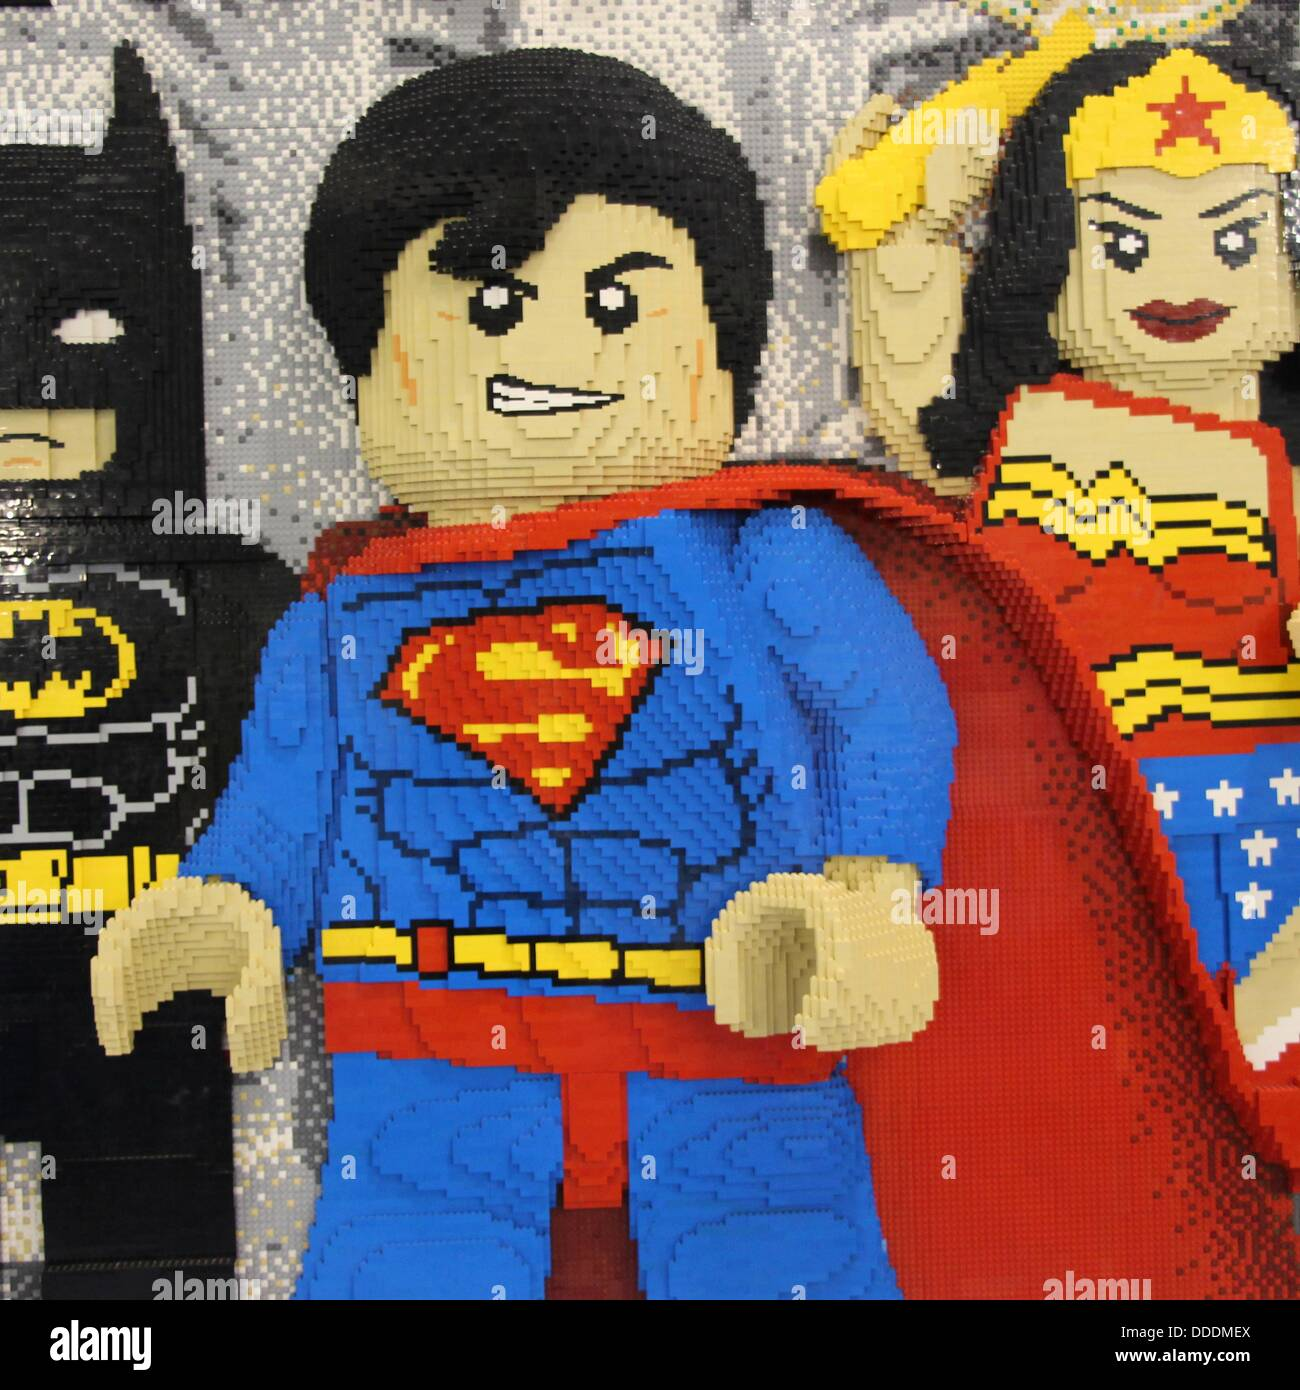 Legos For Free Batman Superman And Wonder Woman From Dc Comics Made Out Of Legos